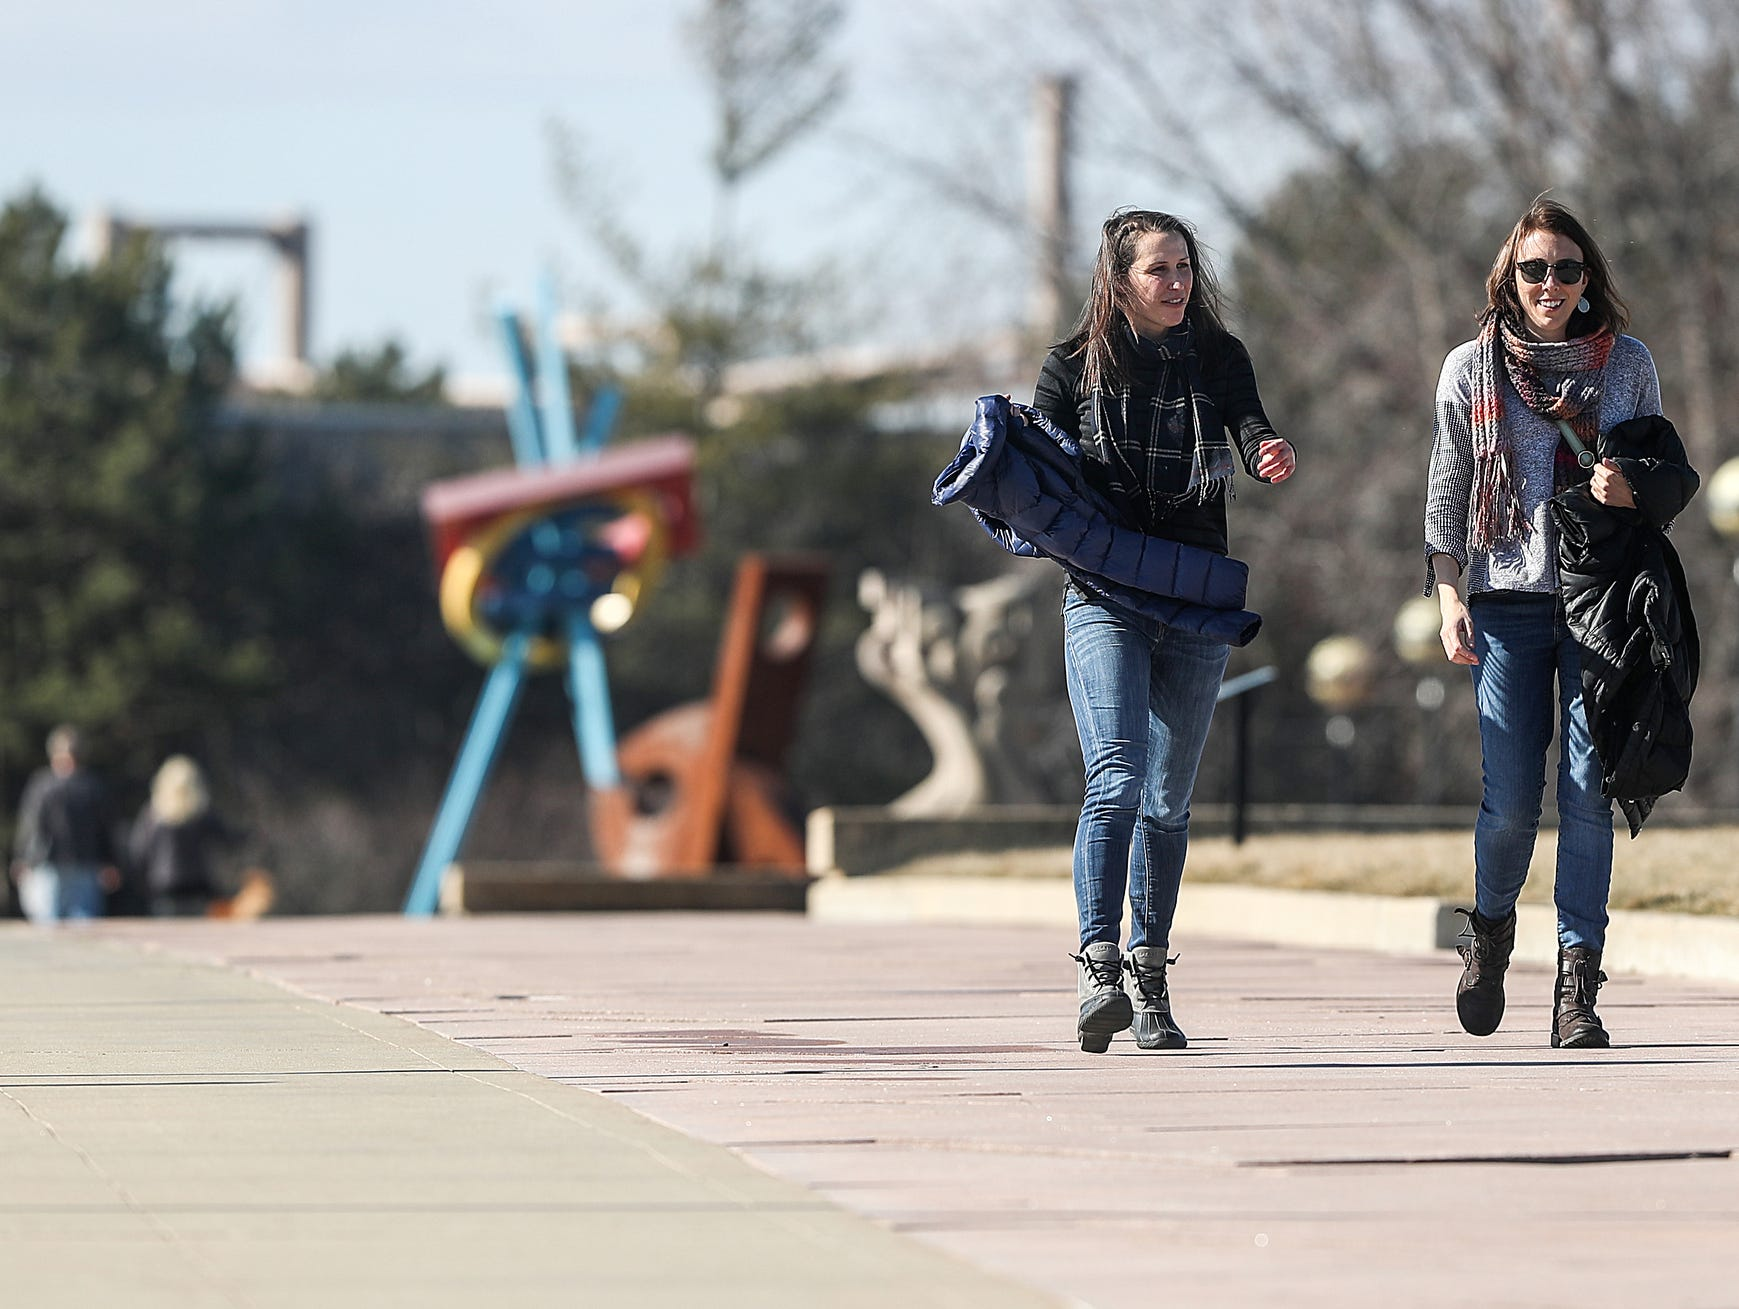 From left, Calah Schlabach and Emily Arkus take their coats off for a 65-degree walk at White River State Park in Indianapolis, Sunday, Feb. 3, 2019. The warm weather comes just days after sub-zero temperatures swept over Indiana.